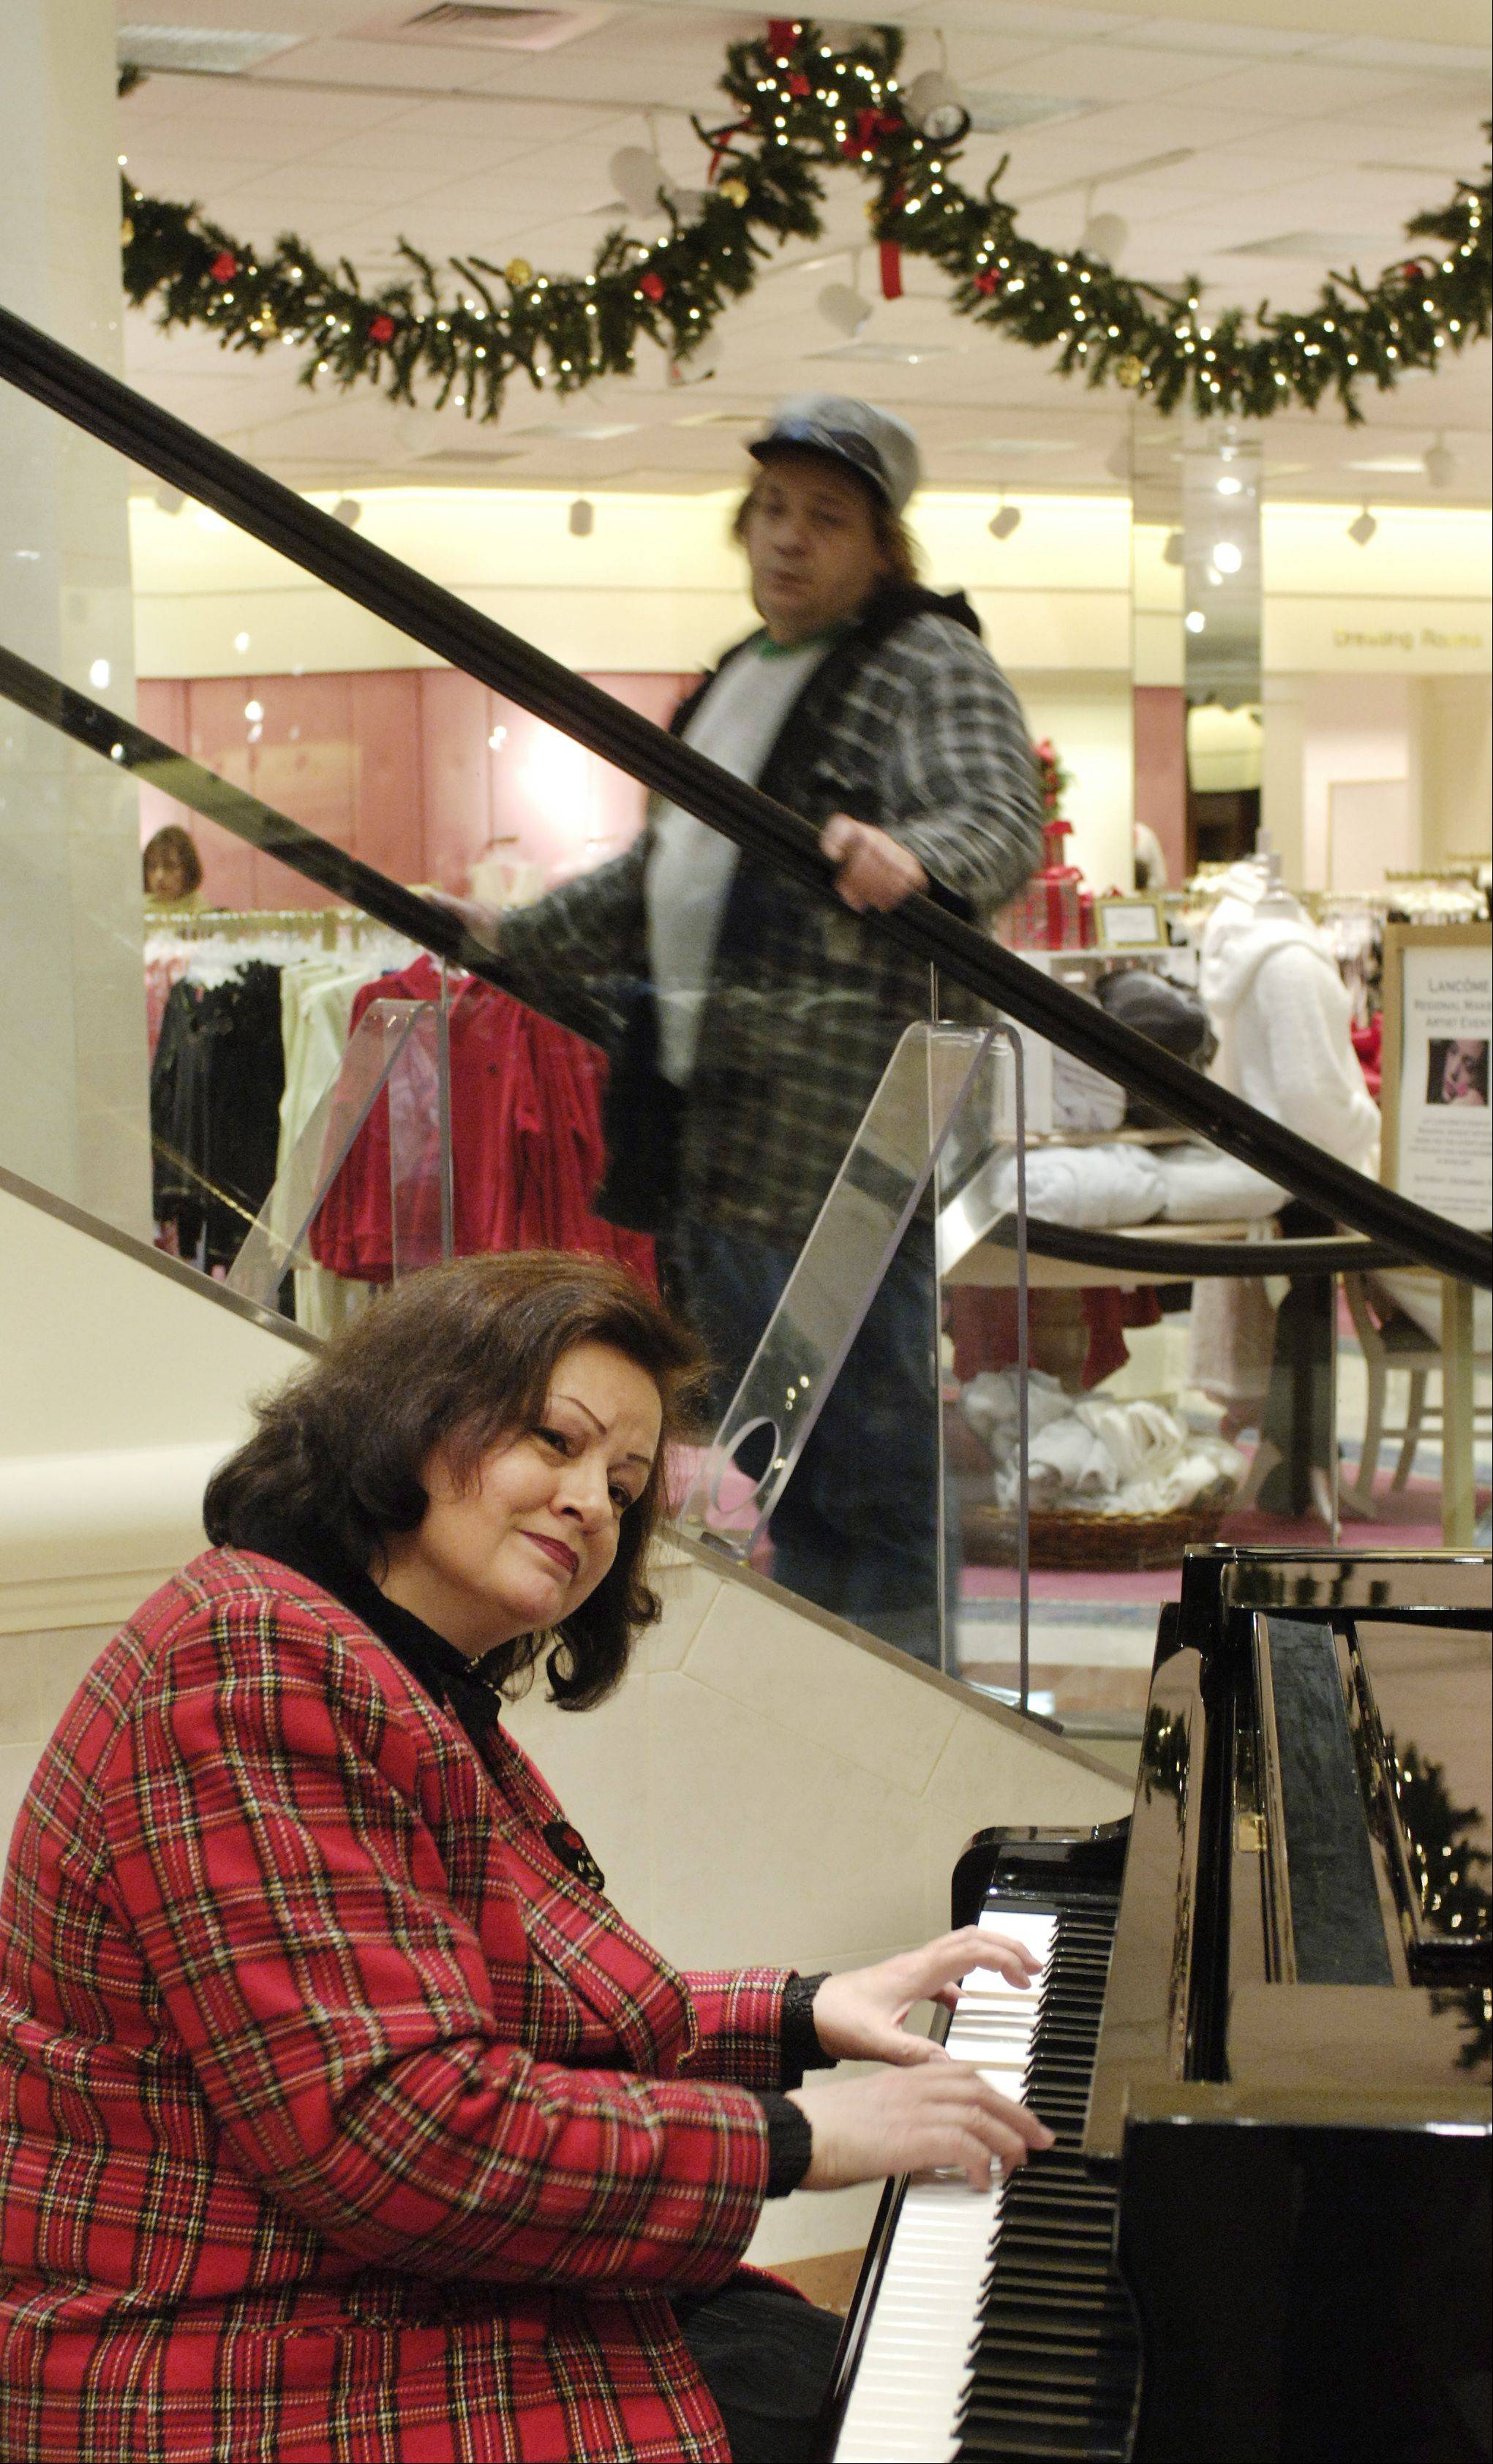 Even though Charlestowne Mall has changed its name and owners, visitors can count on Von Maur to entertain people during the holidays.